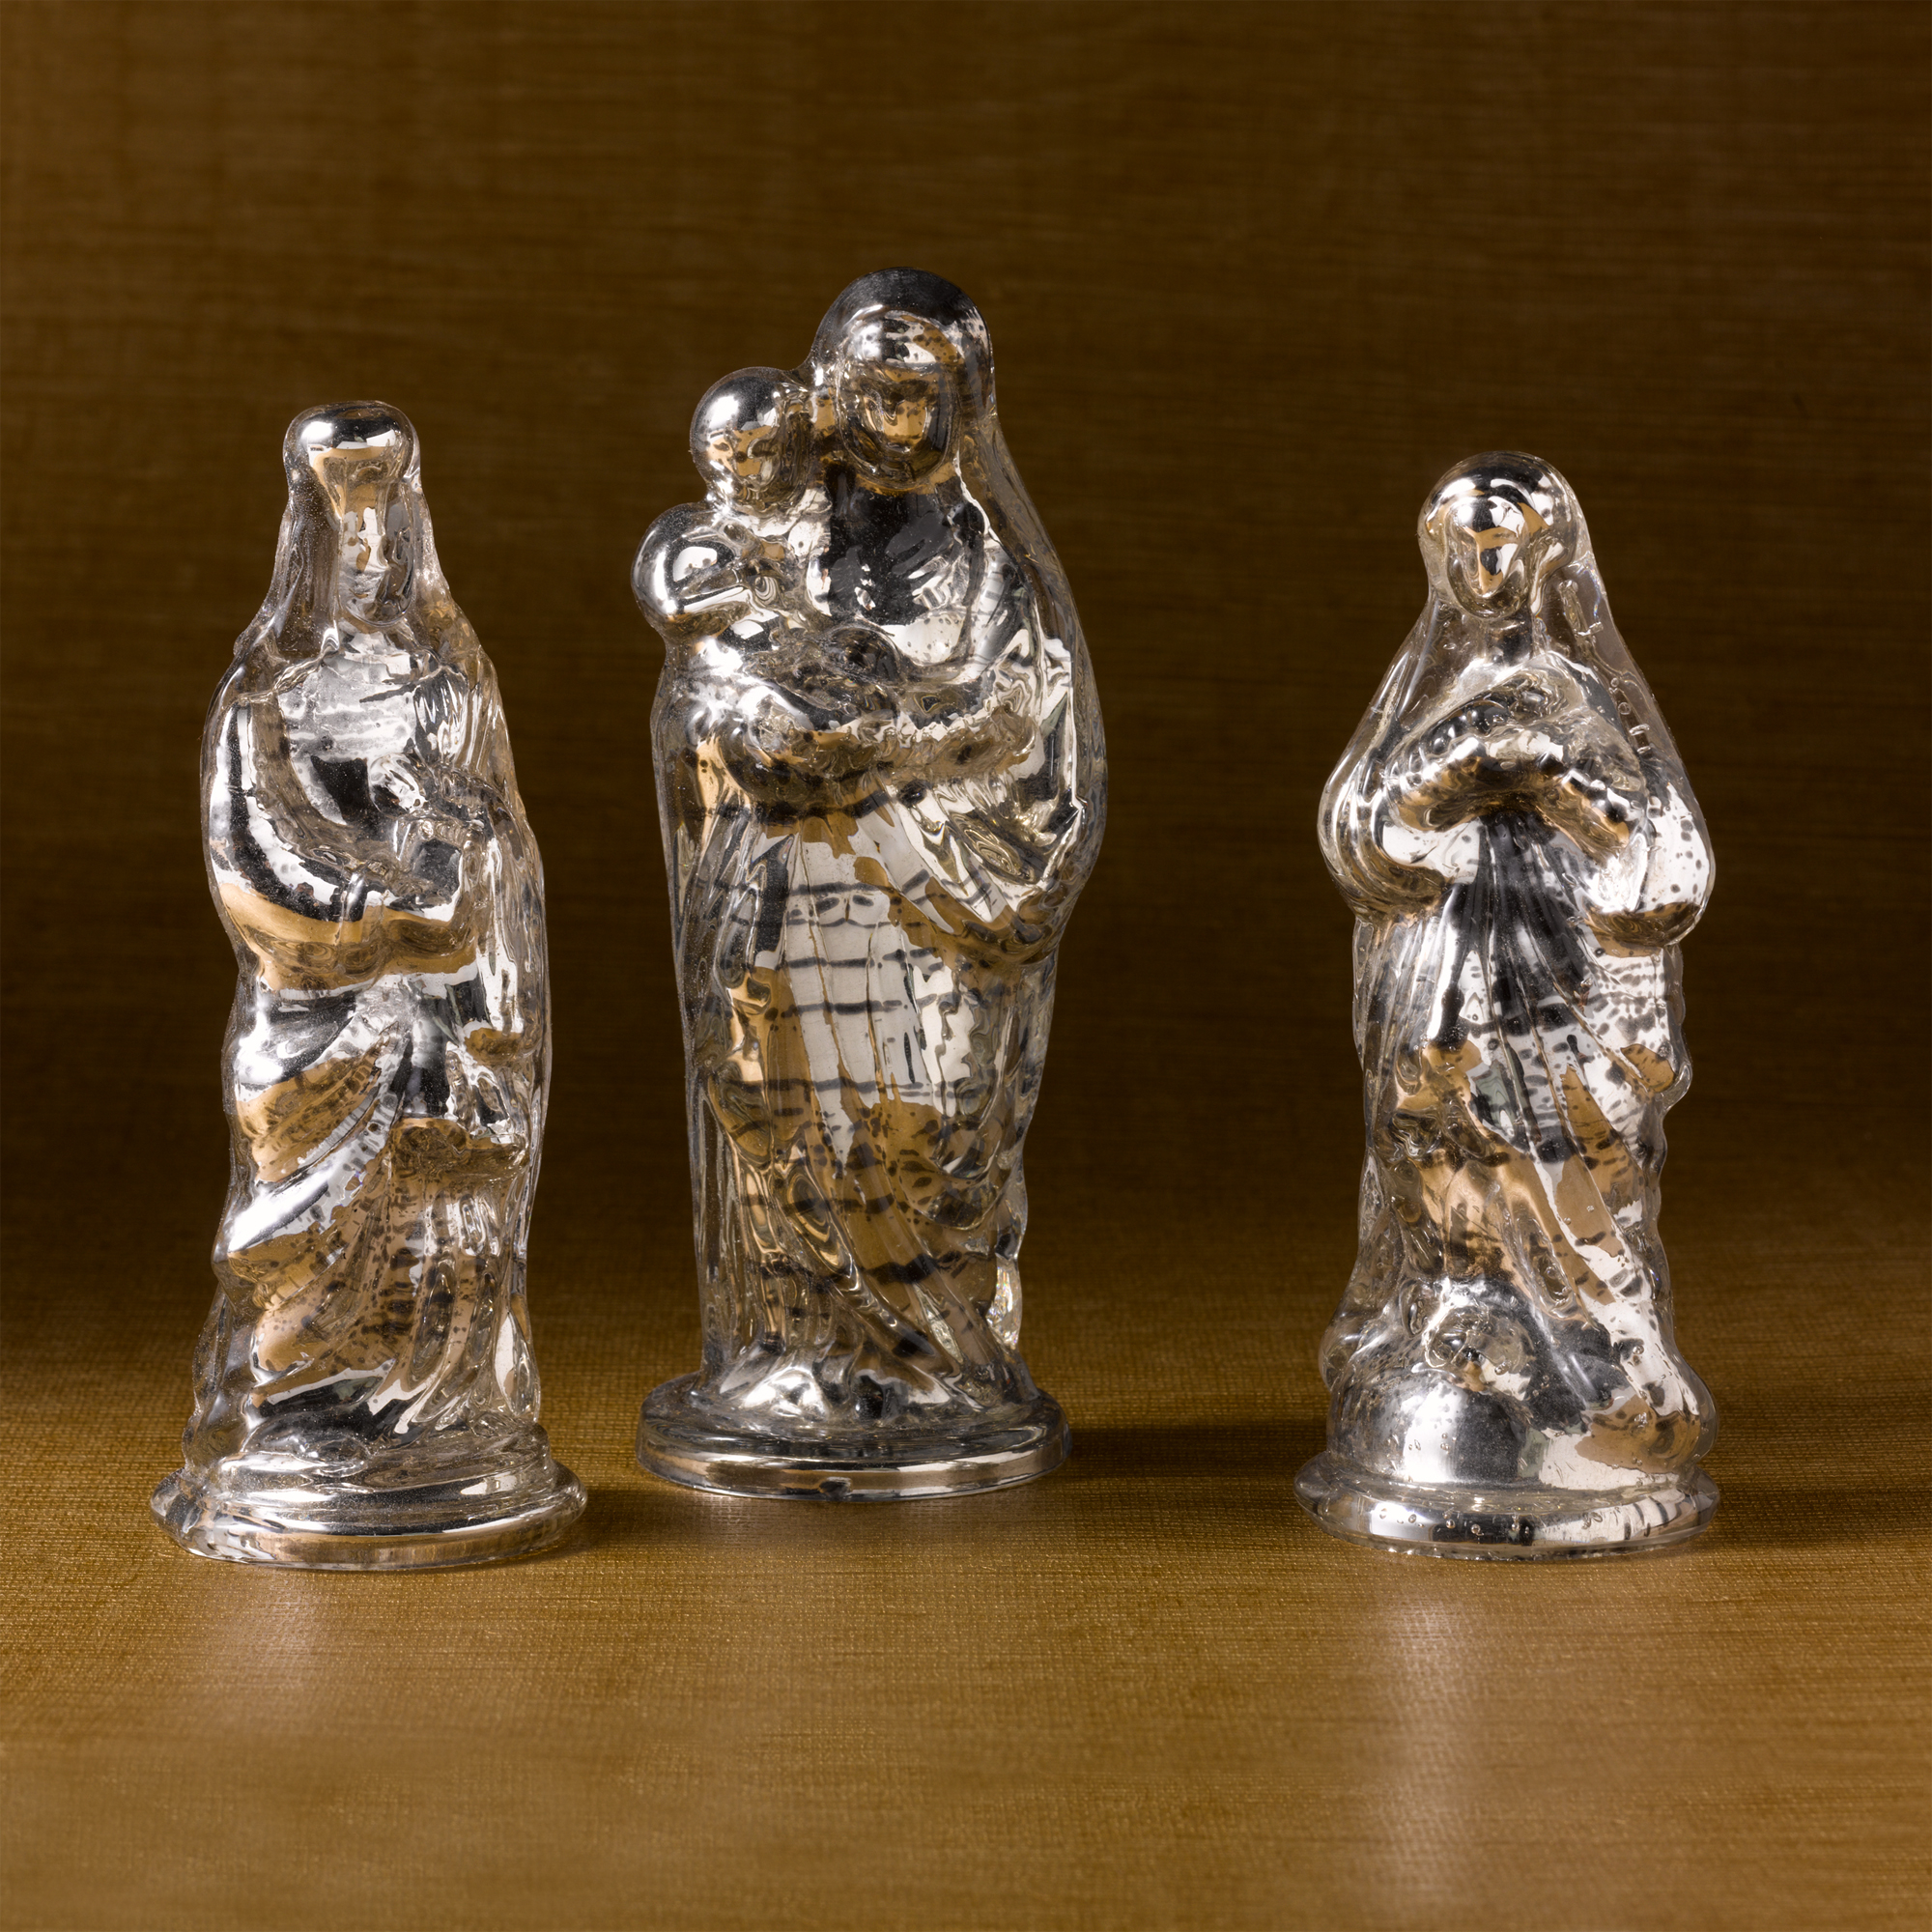 Antiqued Mercury Glass Figures